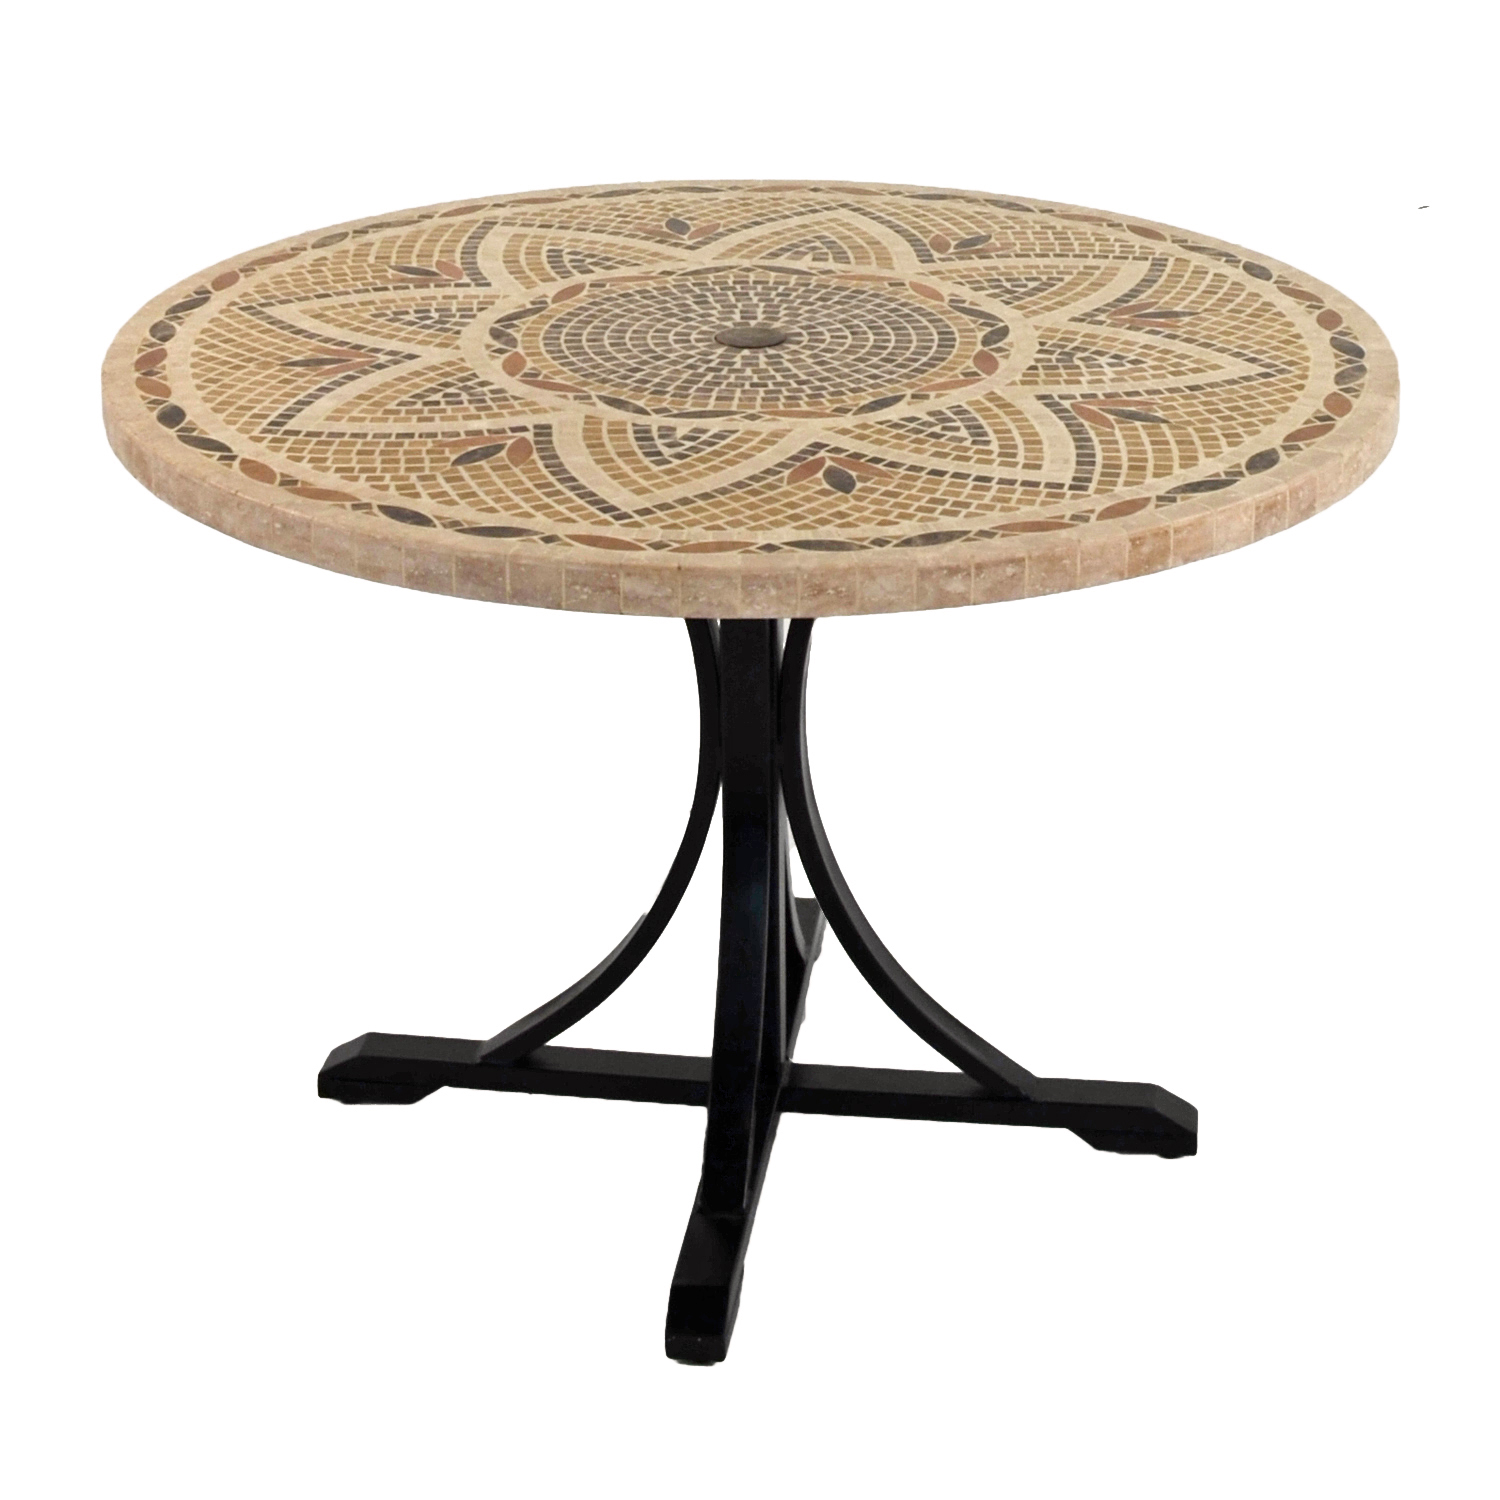 MONTPELLIER 110CM DINING TABLE